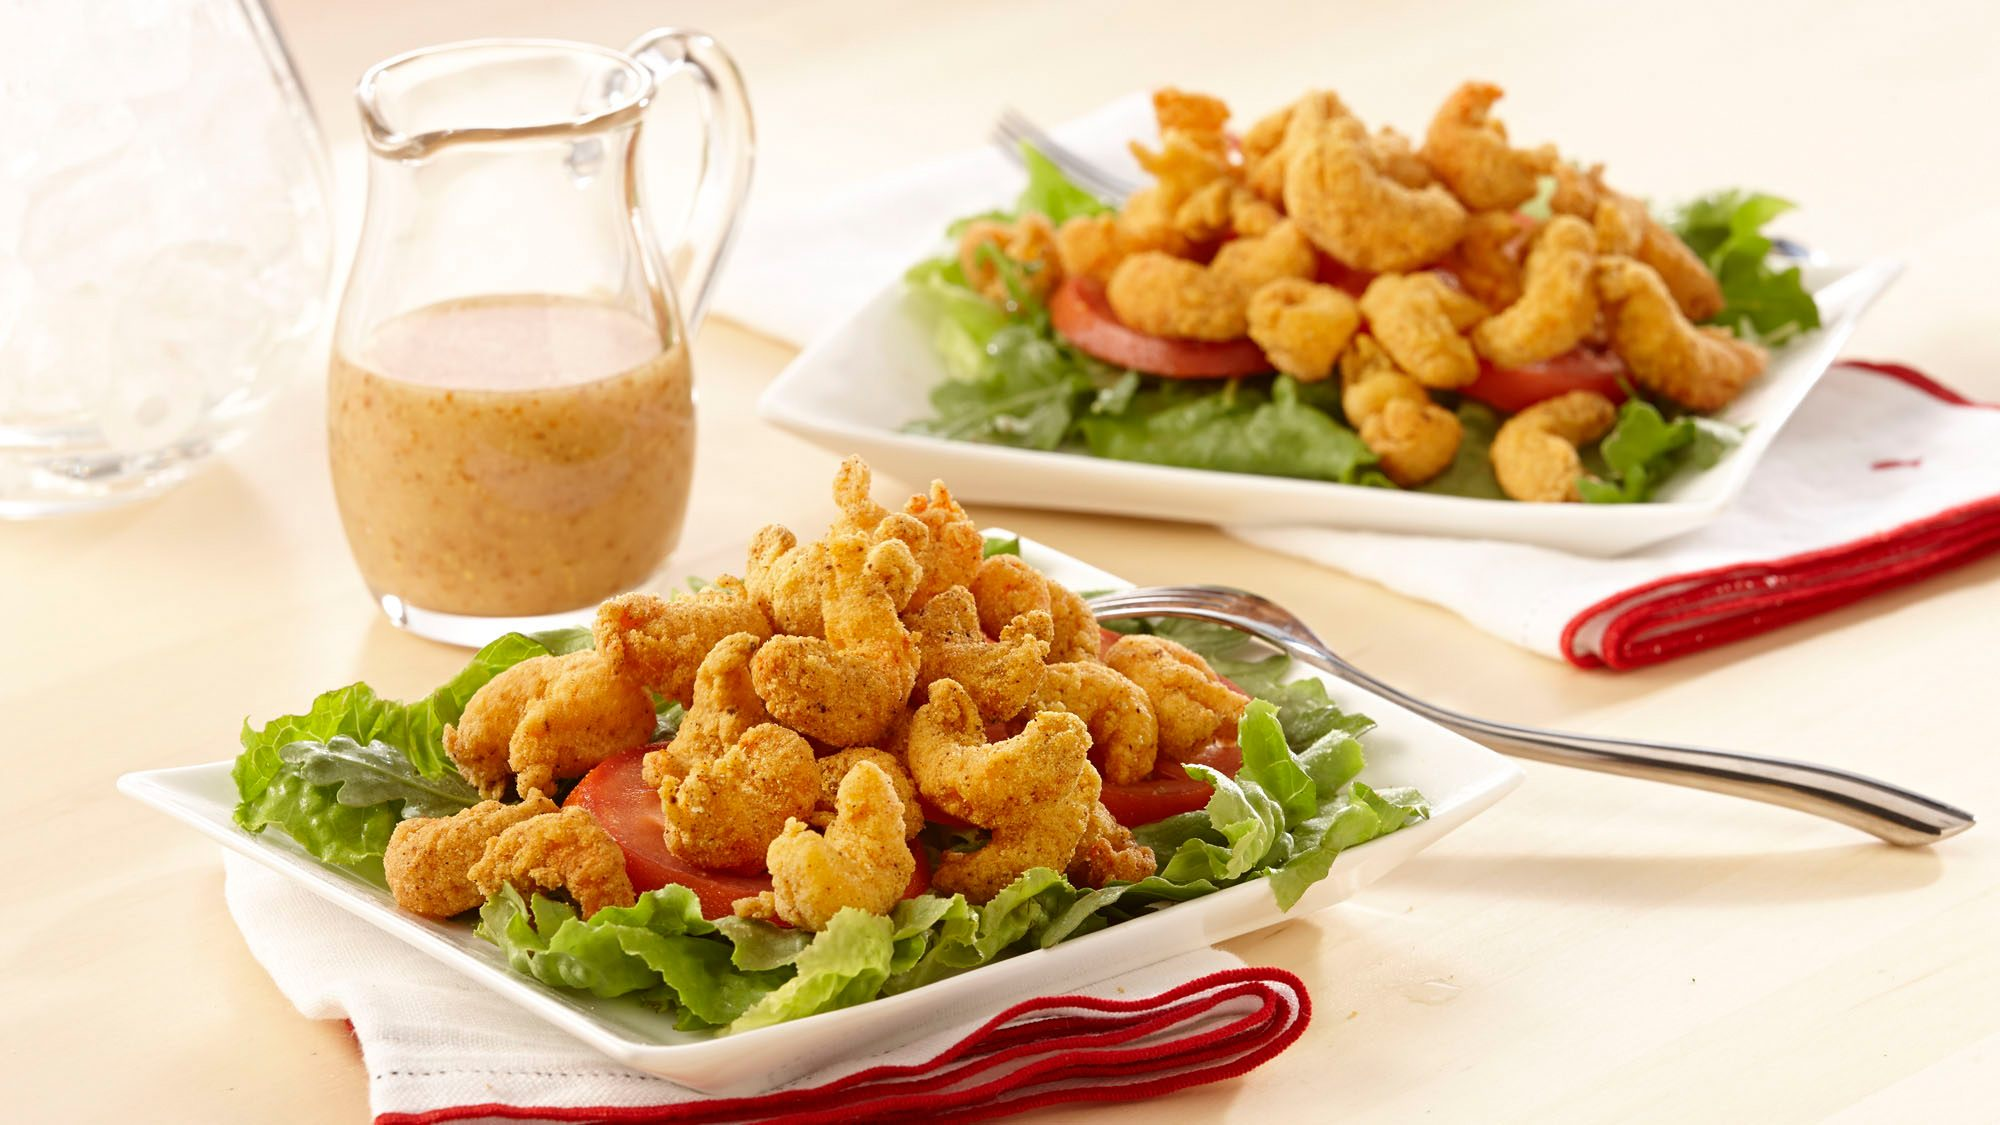 ZATARAIN's Fried Crawfish Salad